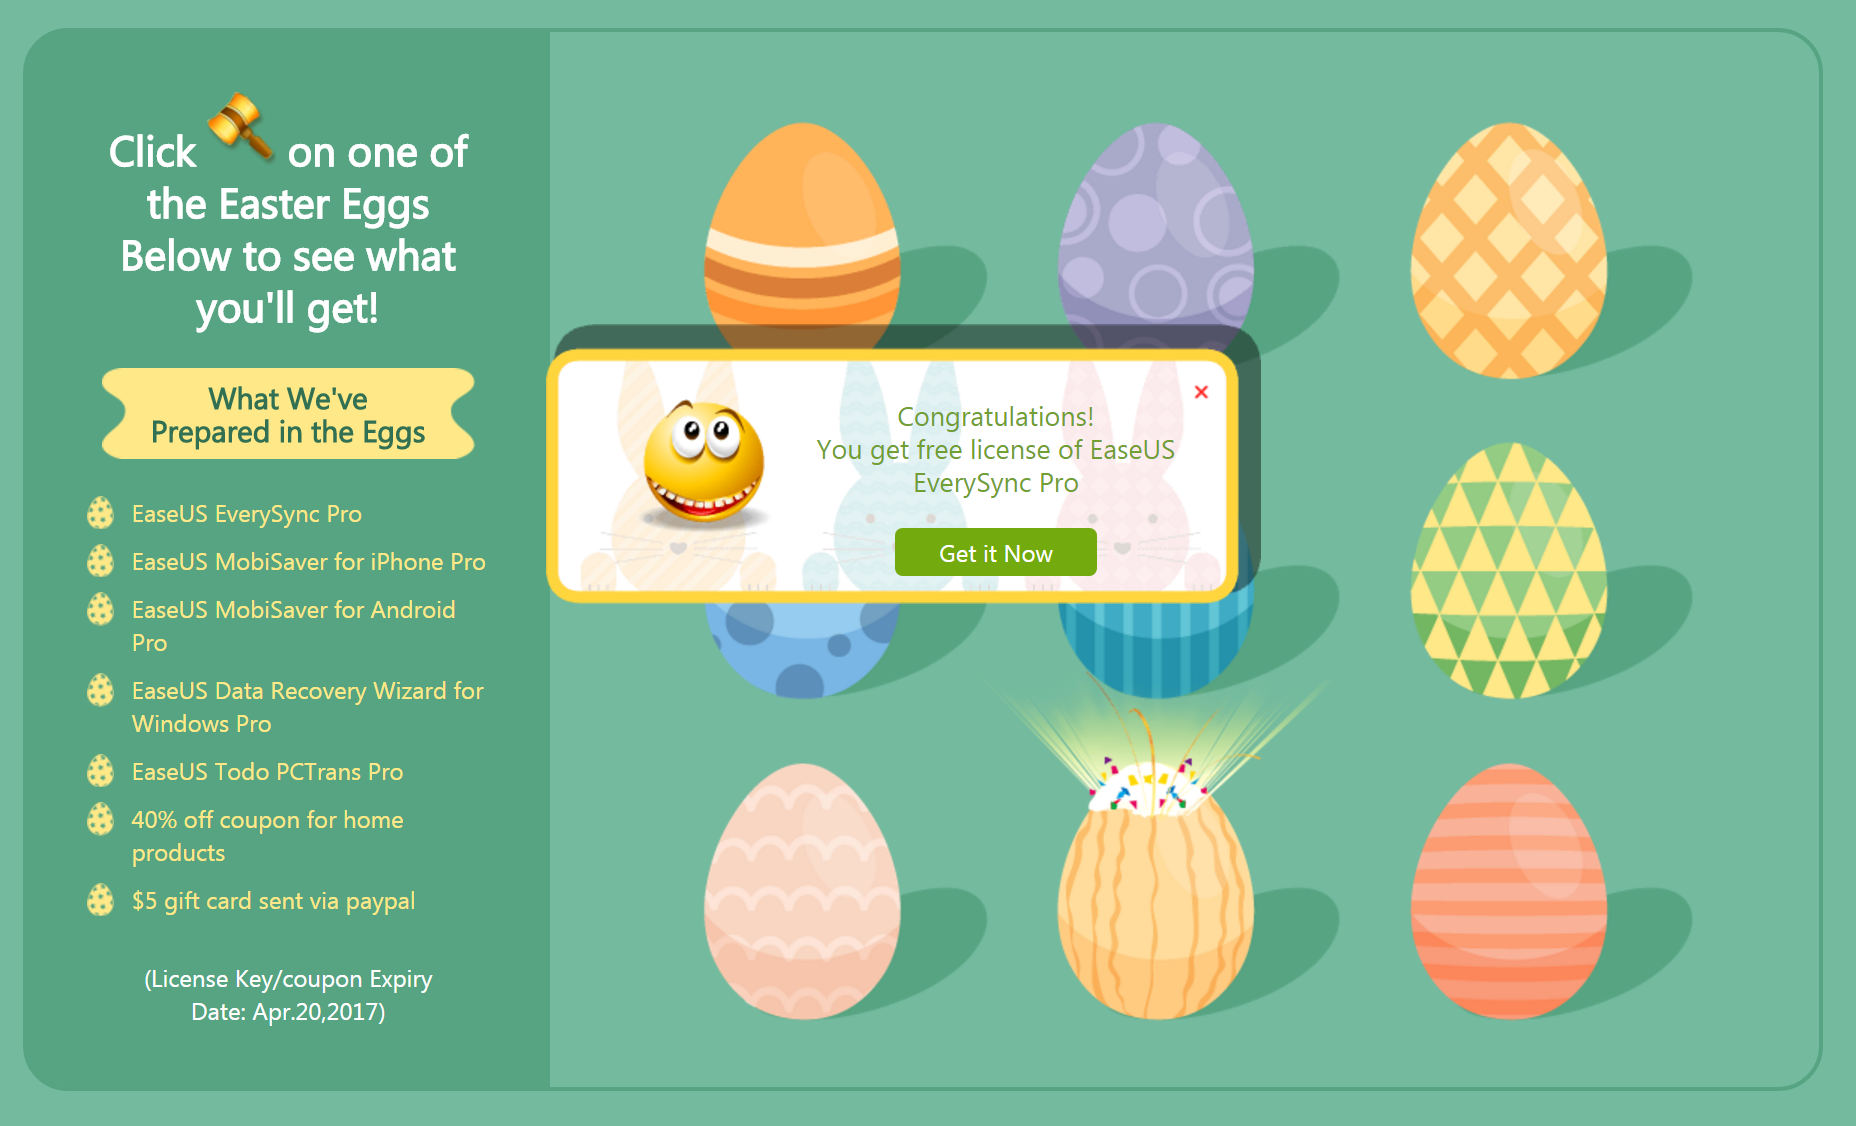 2017-04-13 11_18_06-Easter Special Offer – EaseUS Software – Cent Browser @3C 達人廖阿輝